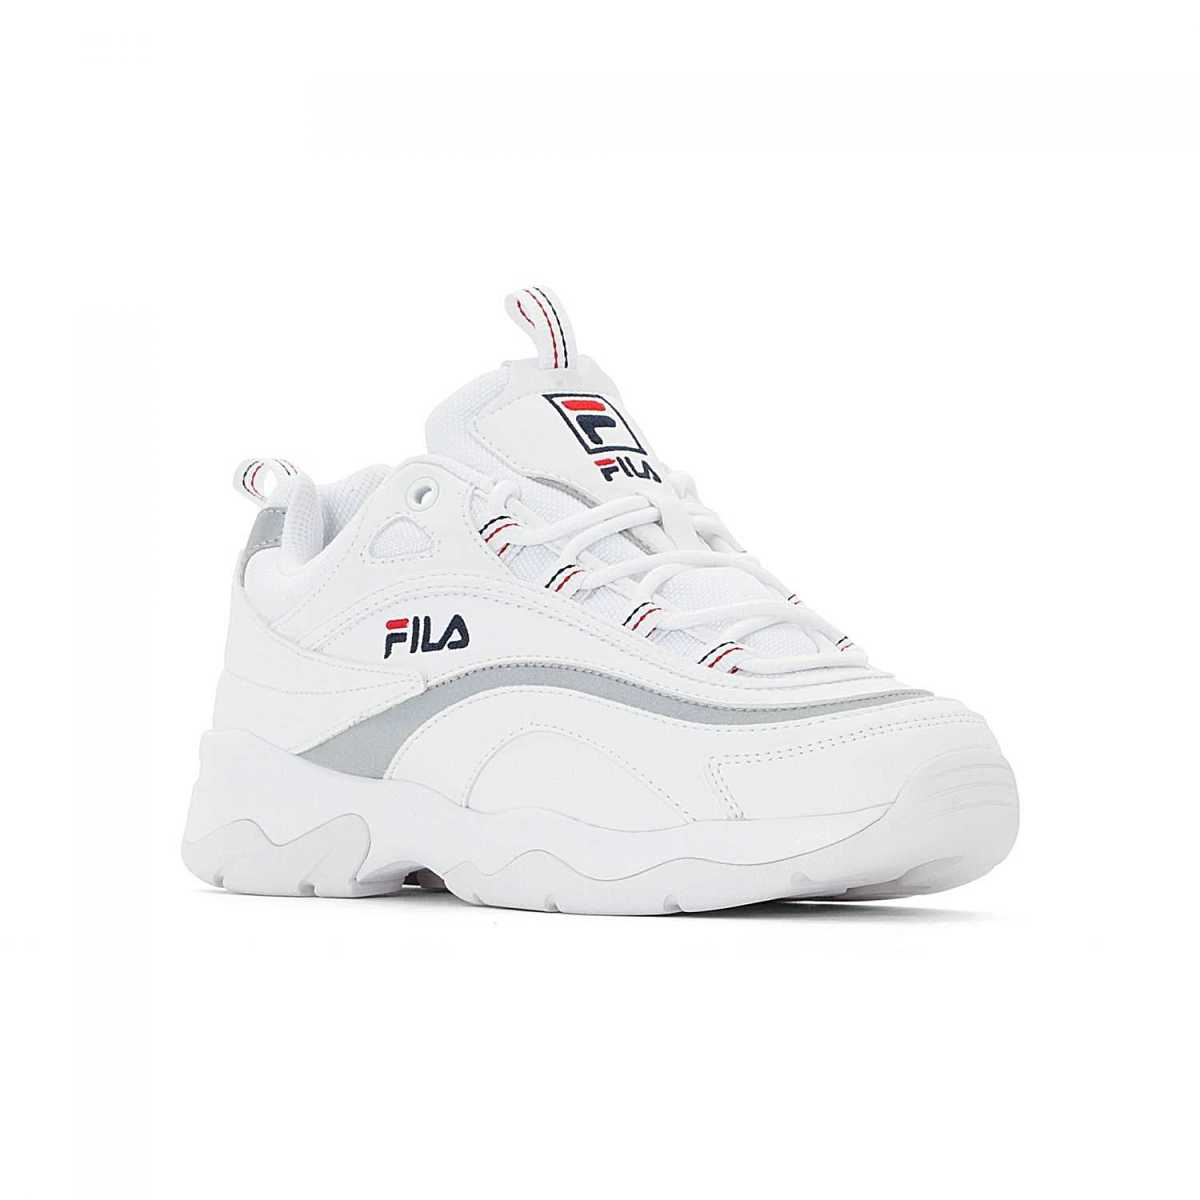 FILA Ray Low Wmn white-silver in Silver for Women - GOOFASH